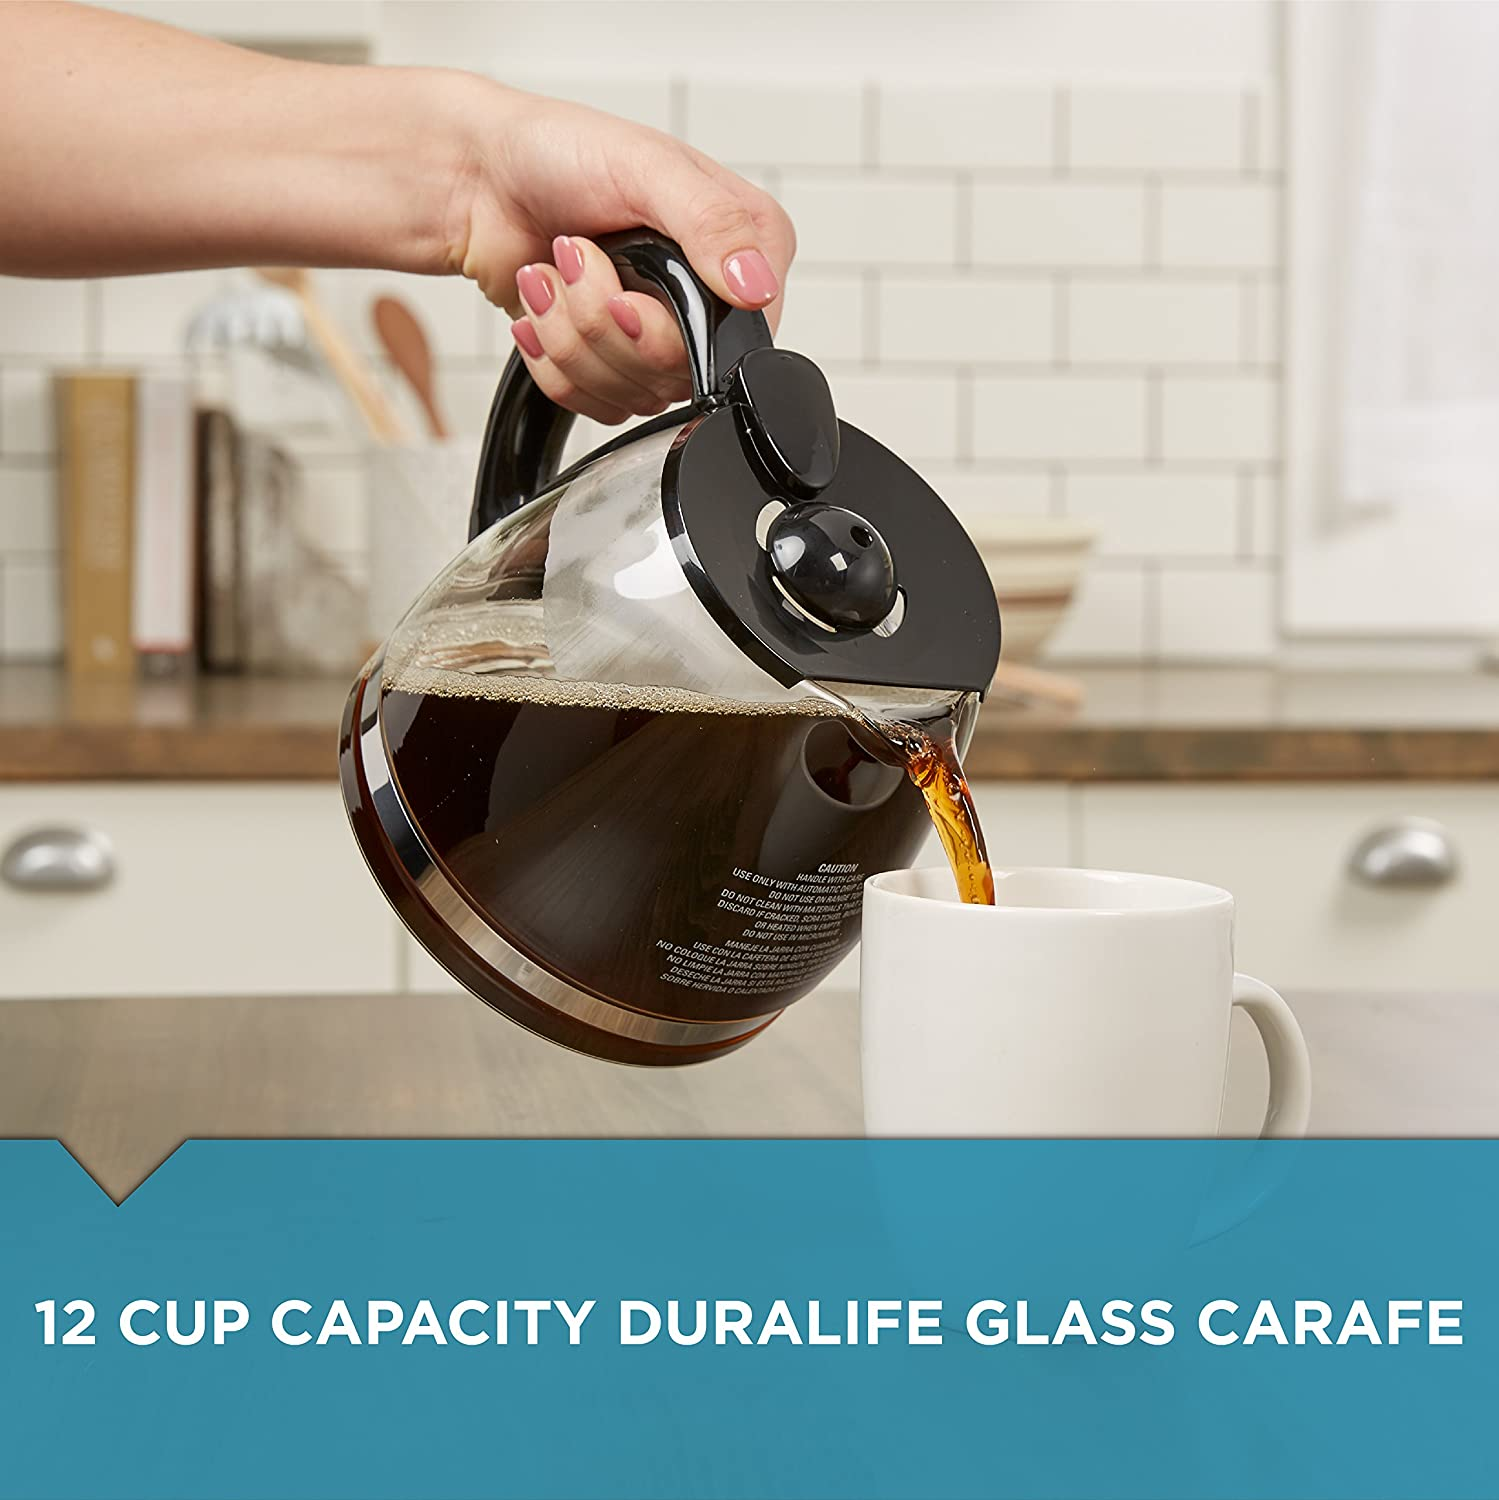 BLACK+DECKER 12-Cup Replacement Carafe with Duralife Construction, Glass